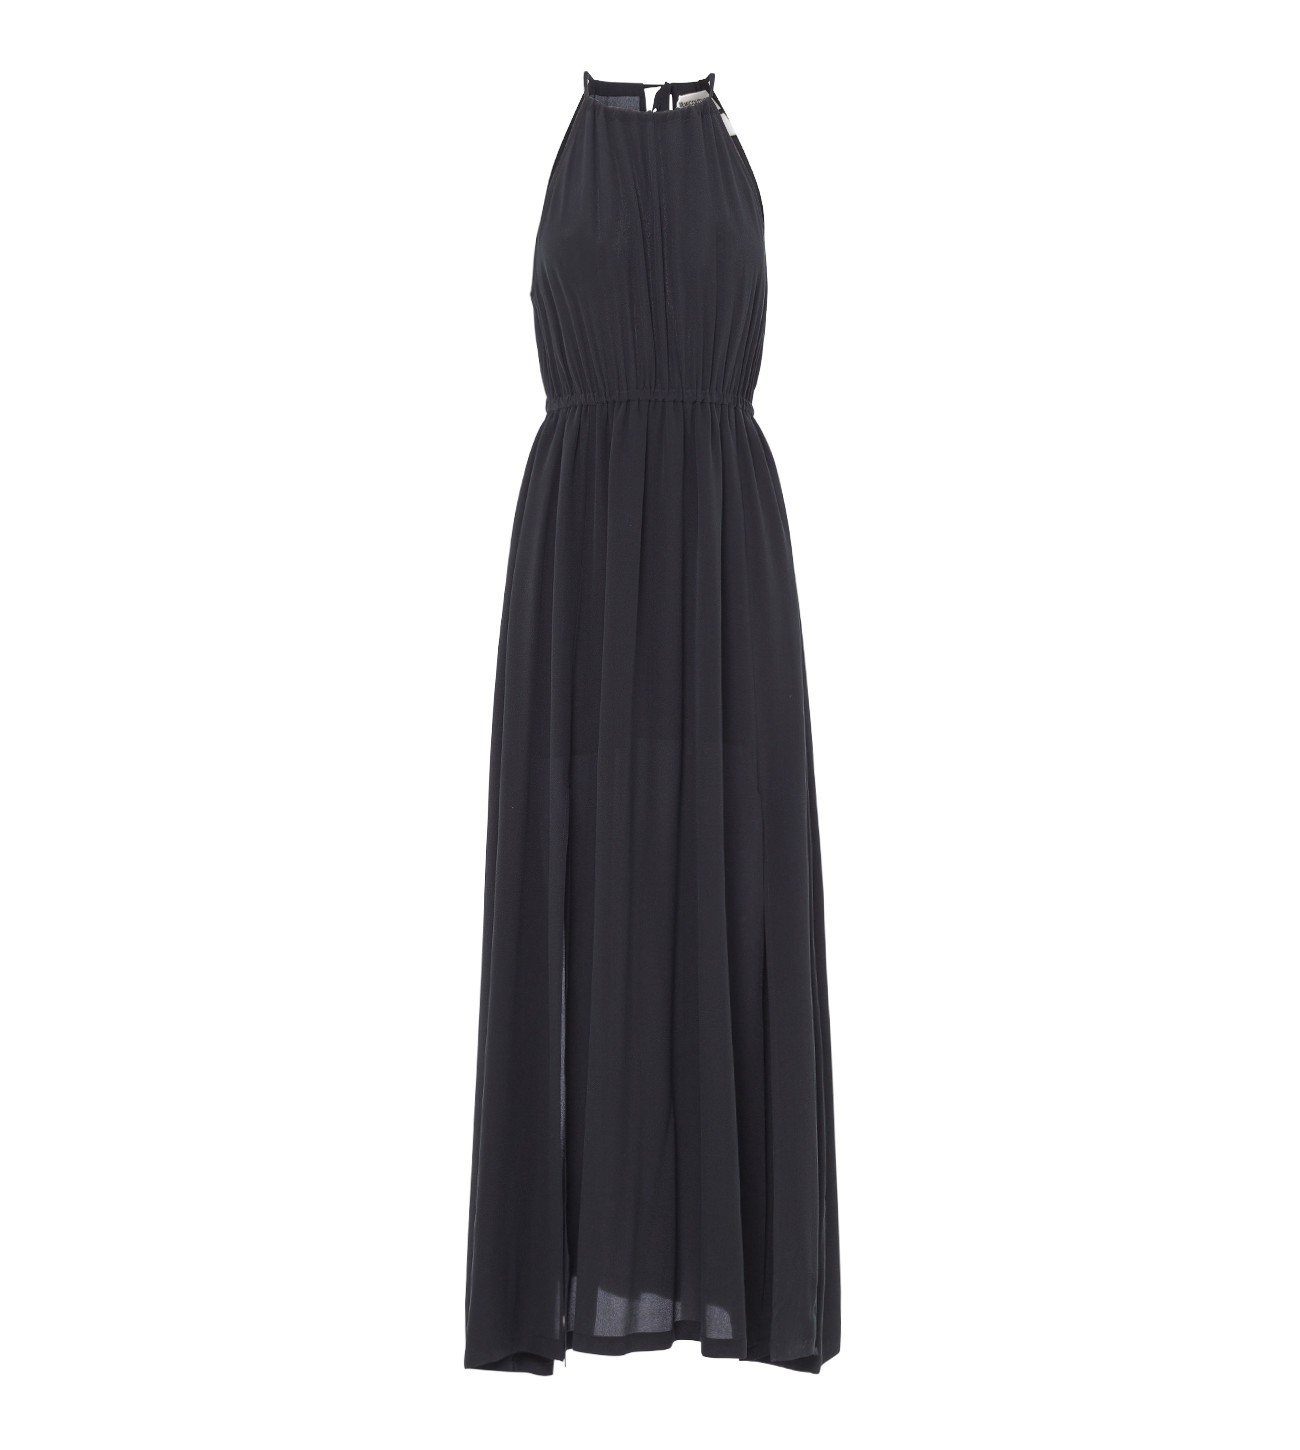 SEMICOUTURE_LONG_DRESS_WITH_HALTER_NECK_MARIONA_FASHION_CLOTHING_WOMAN_SHOP_ONLINE_Y9PU10